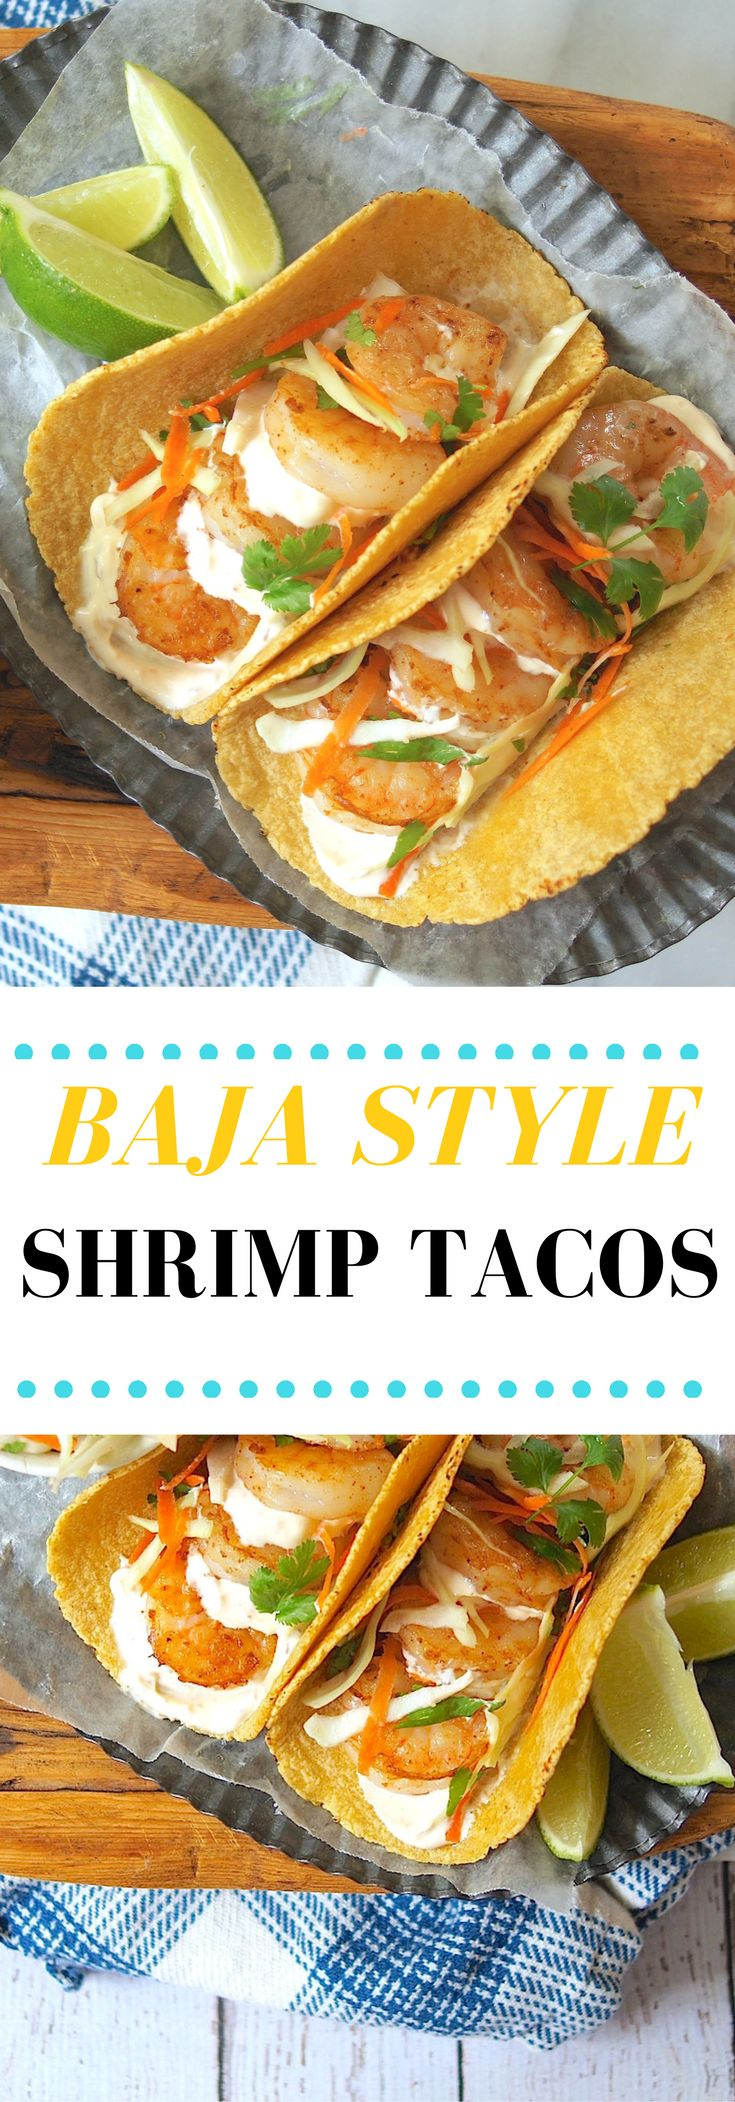 Baja Style Shrimp Tacos with Chipotle Lime Crema